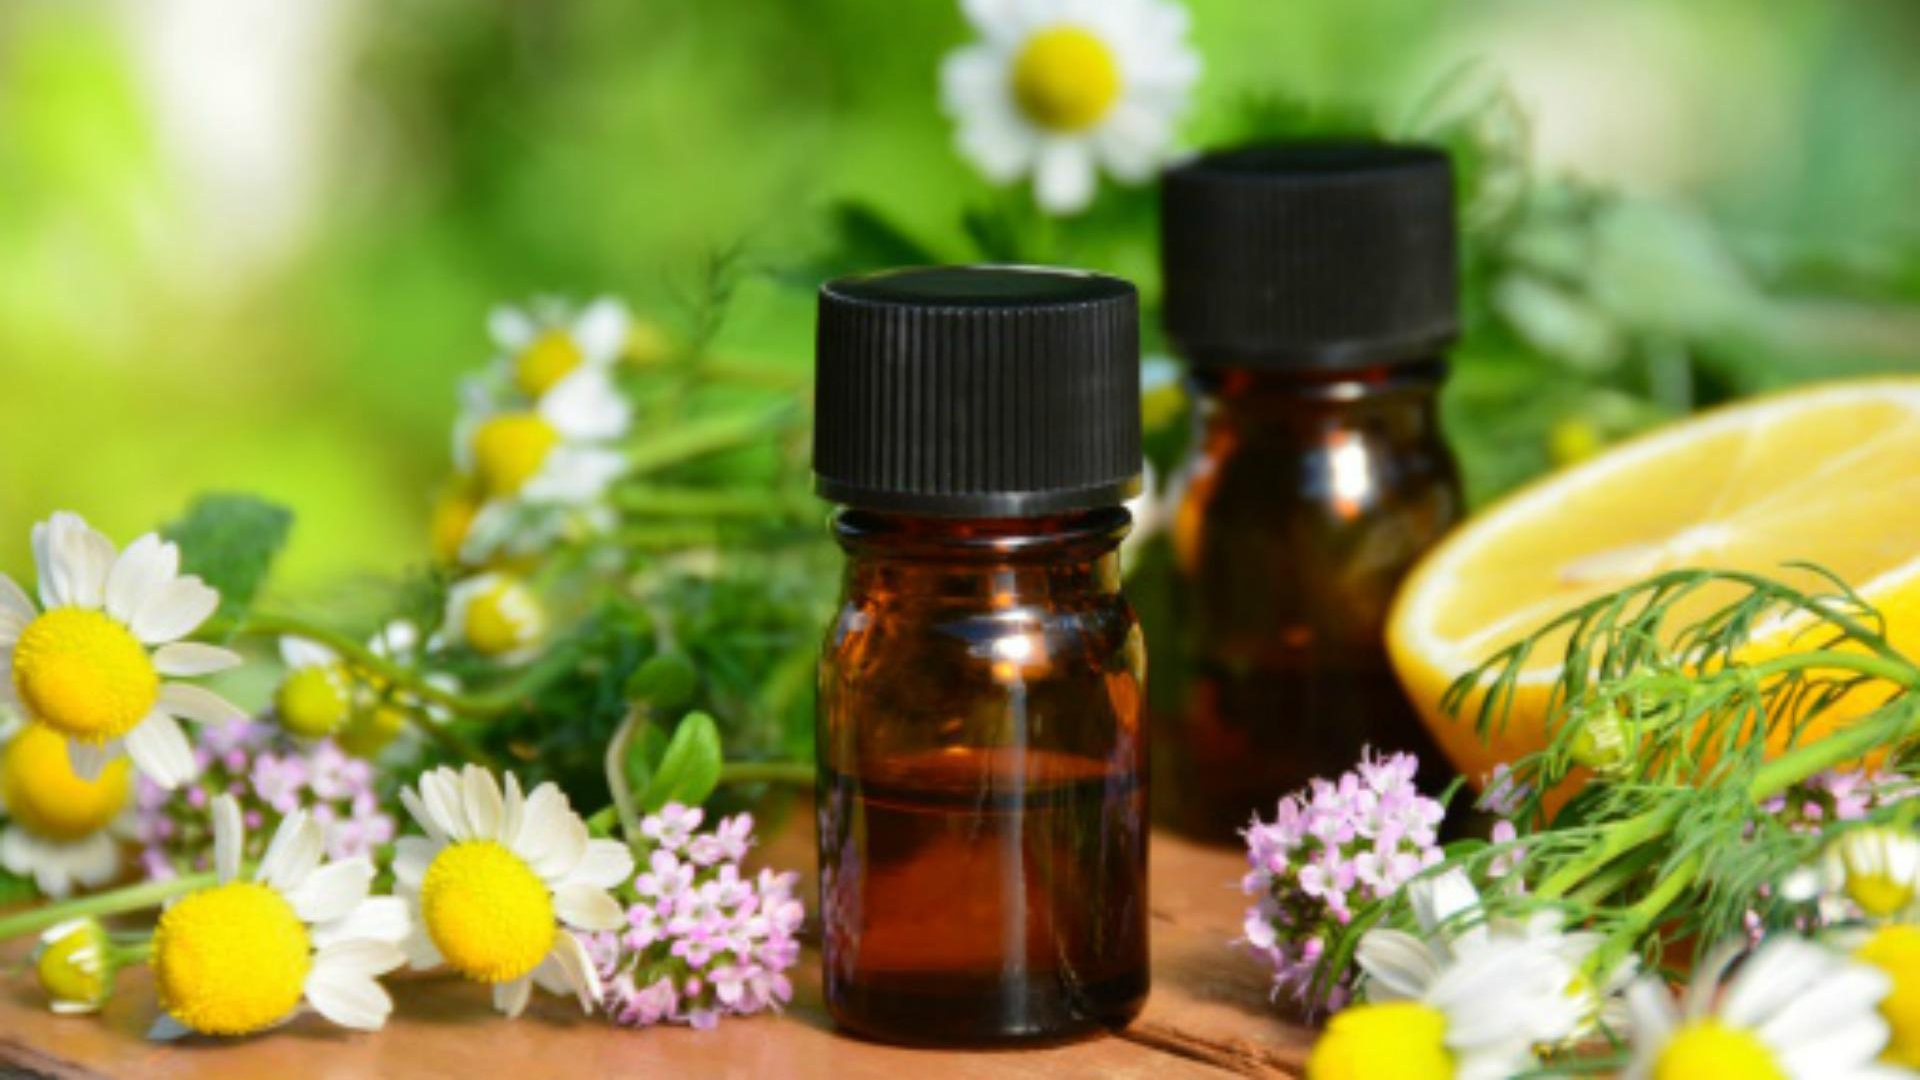 Guest Article: The Best Oils For A Worst Case Scenario – Part 1, by Melissa Mink